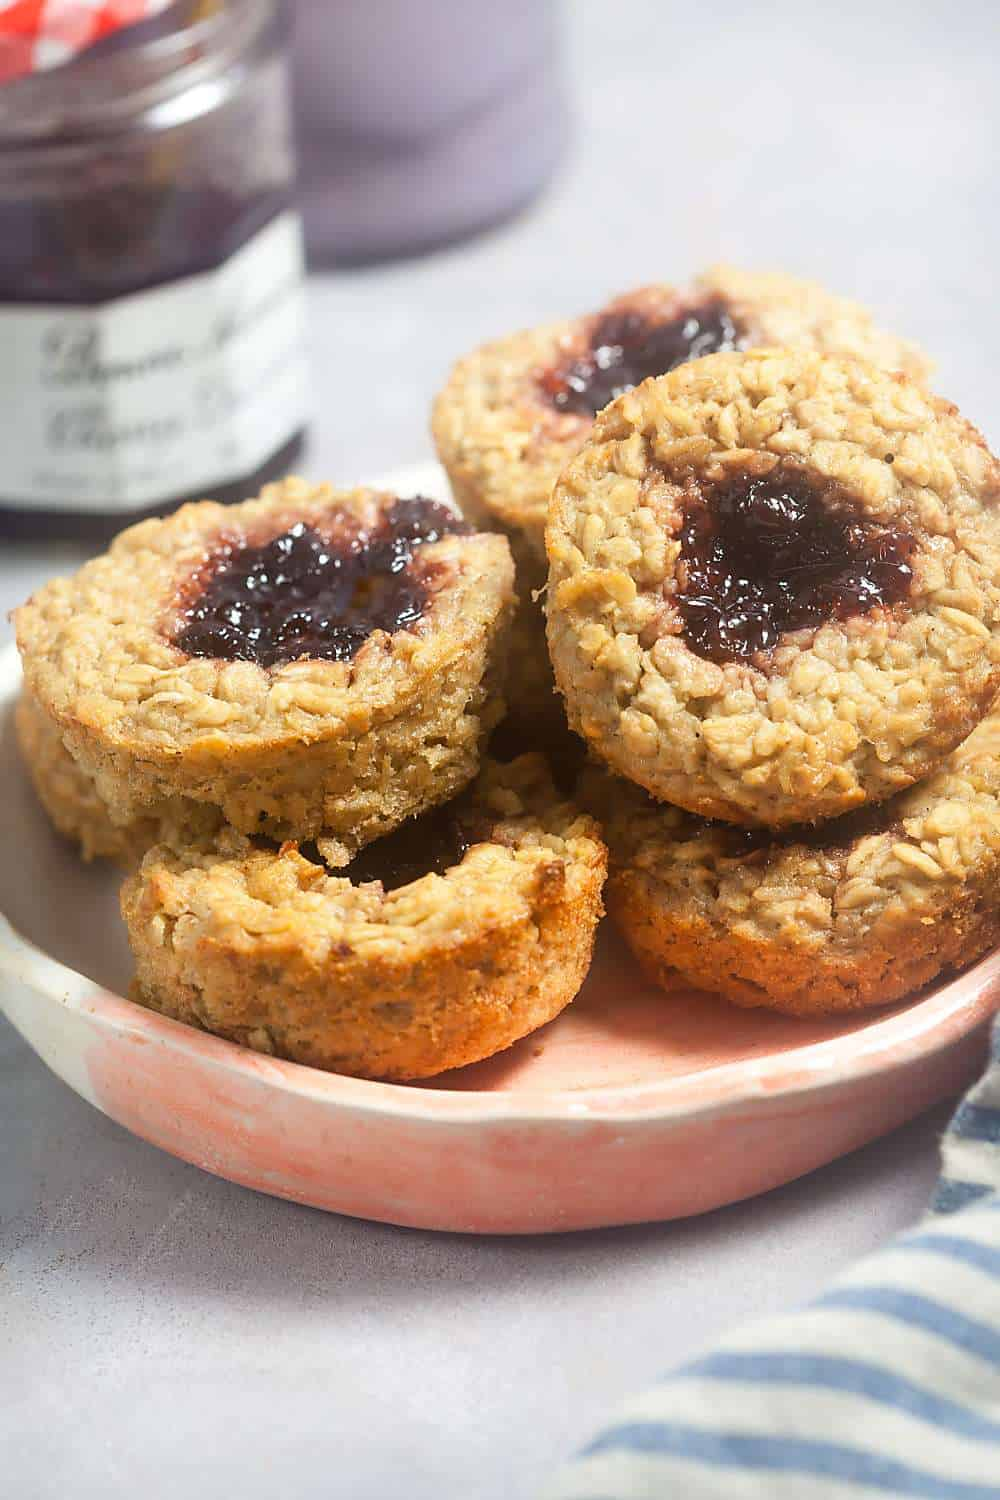 Cashre Butter and Jelly Baked Oatmeal Cups - A great make-ahead breakfast